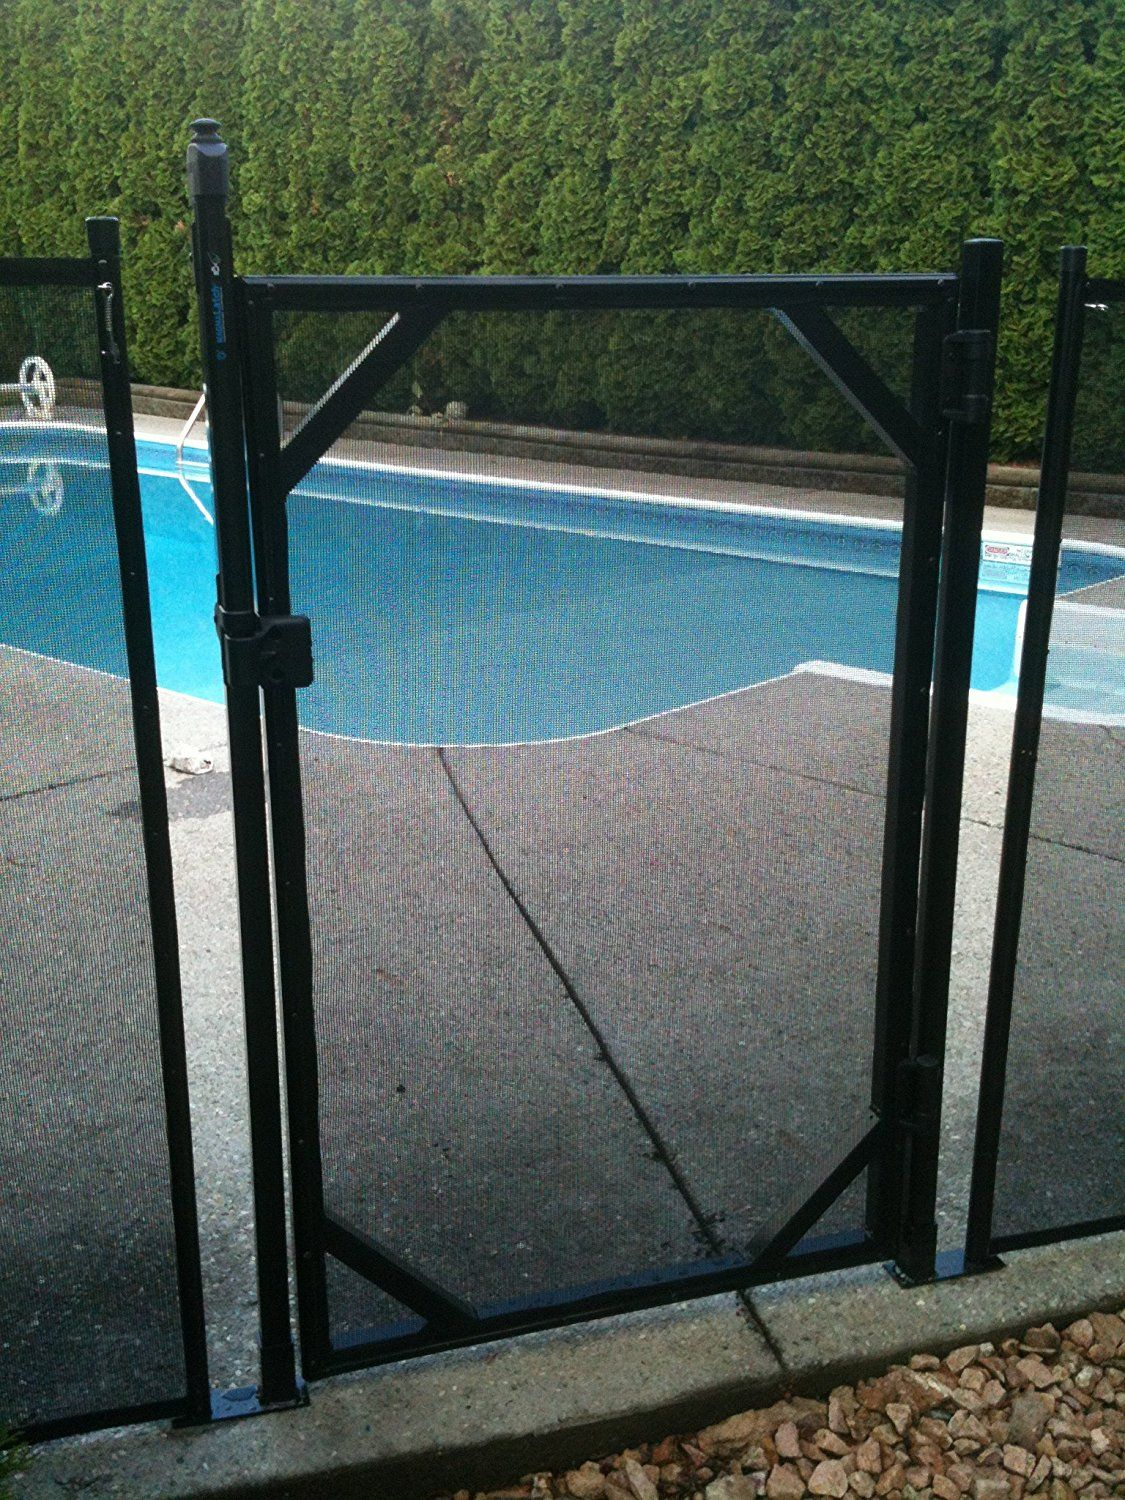 Water Warden Self Closing Gate 4 Want Additional Info Click On The Image This Is An Affiliate Link Mypet Pool Safety Fence Pool Gate Pool Safety